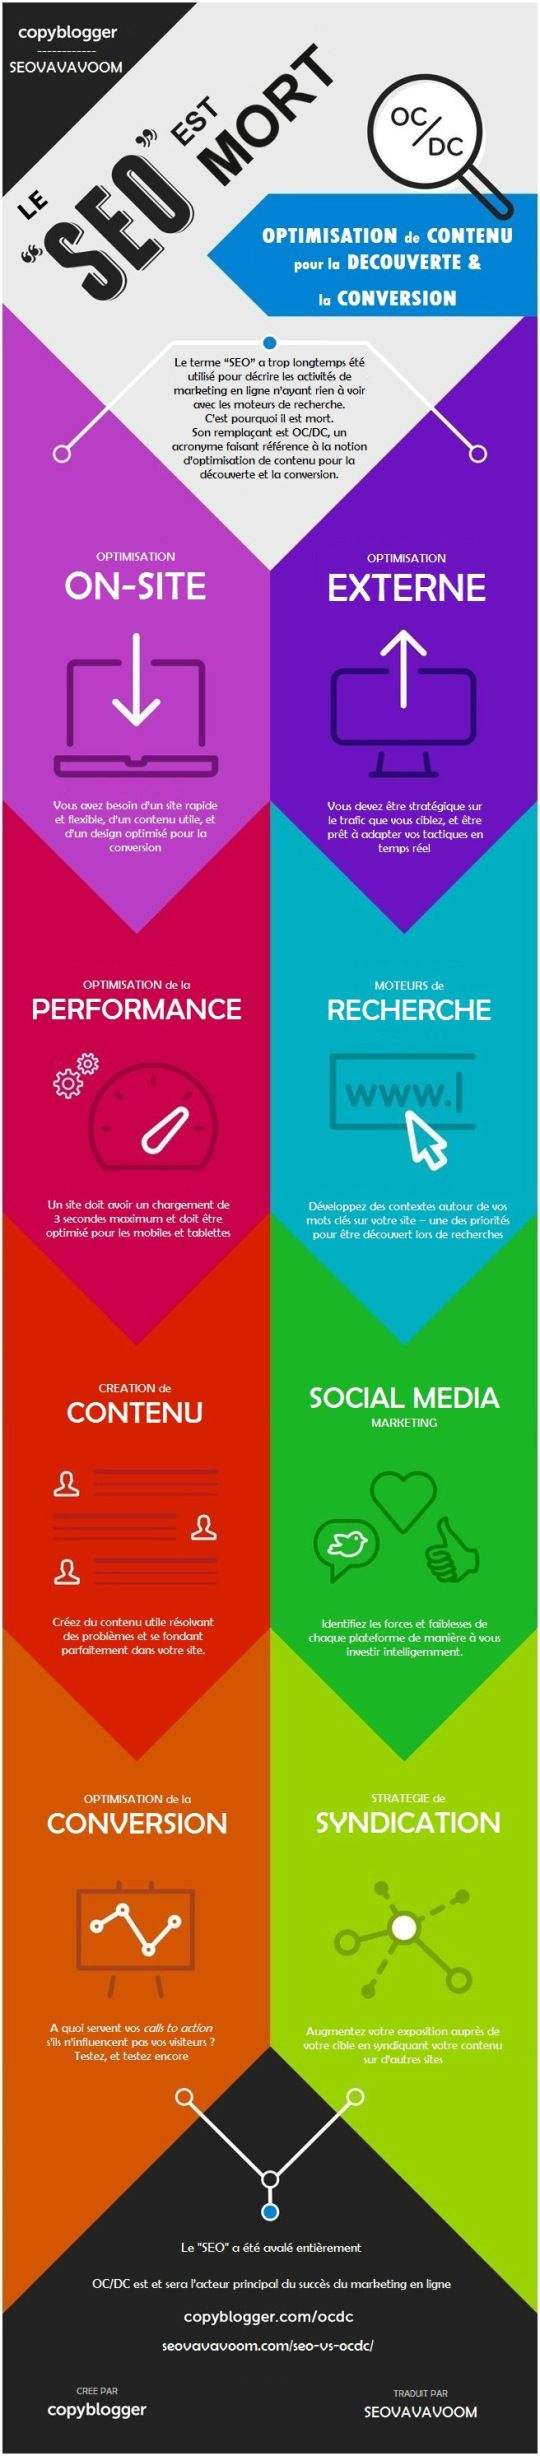 #Infographie Search Engine Optimization #SEO Definition vs #OCDC